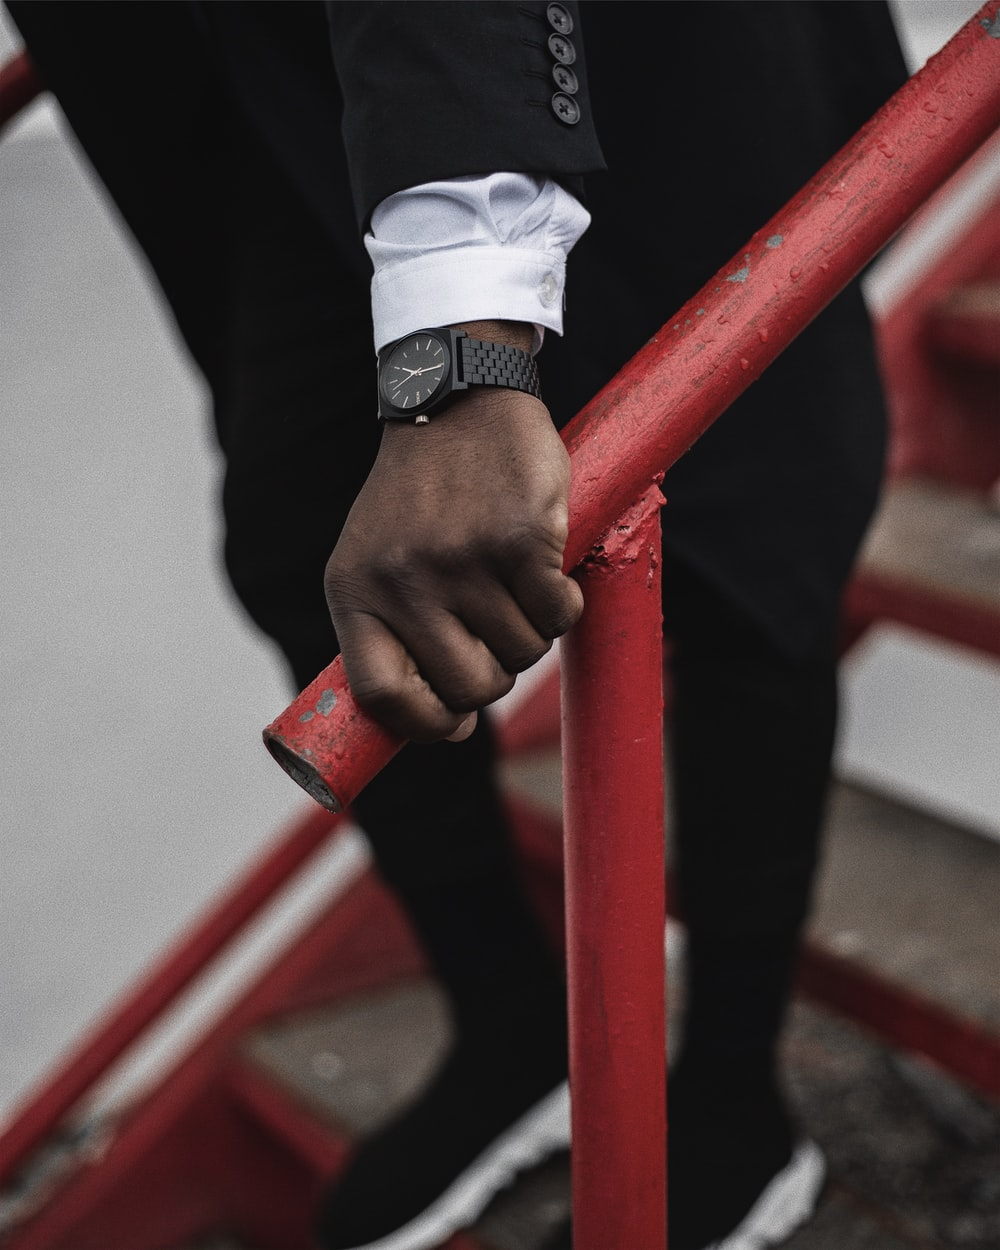 person wearing silver link bracelet watch holding red metal bar